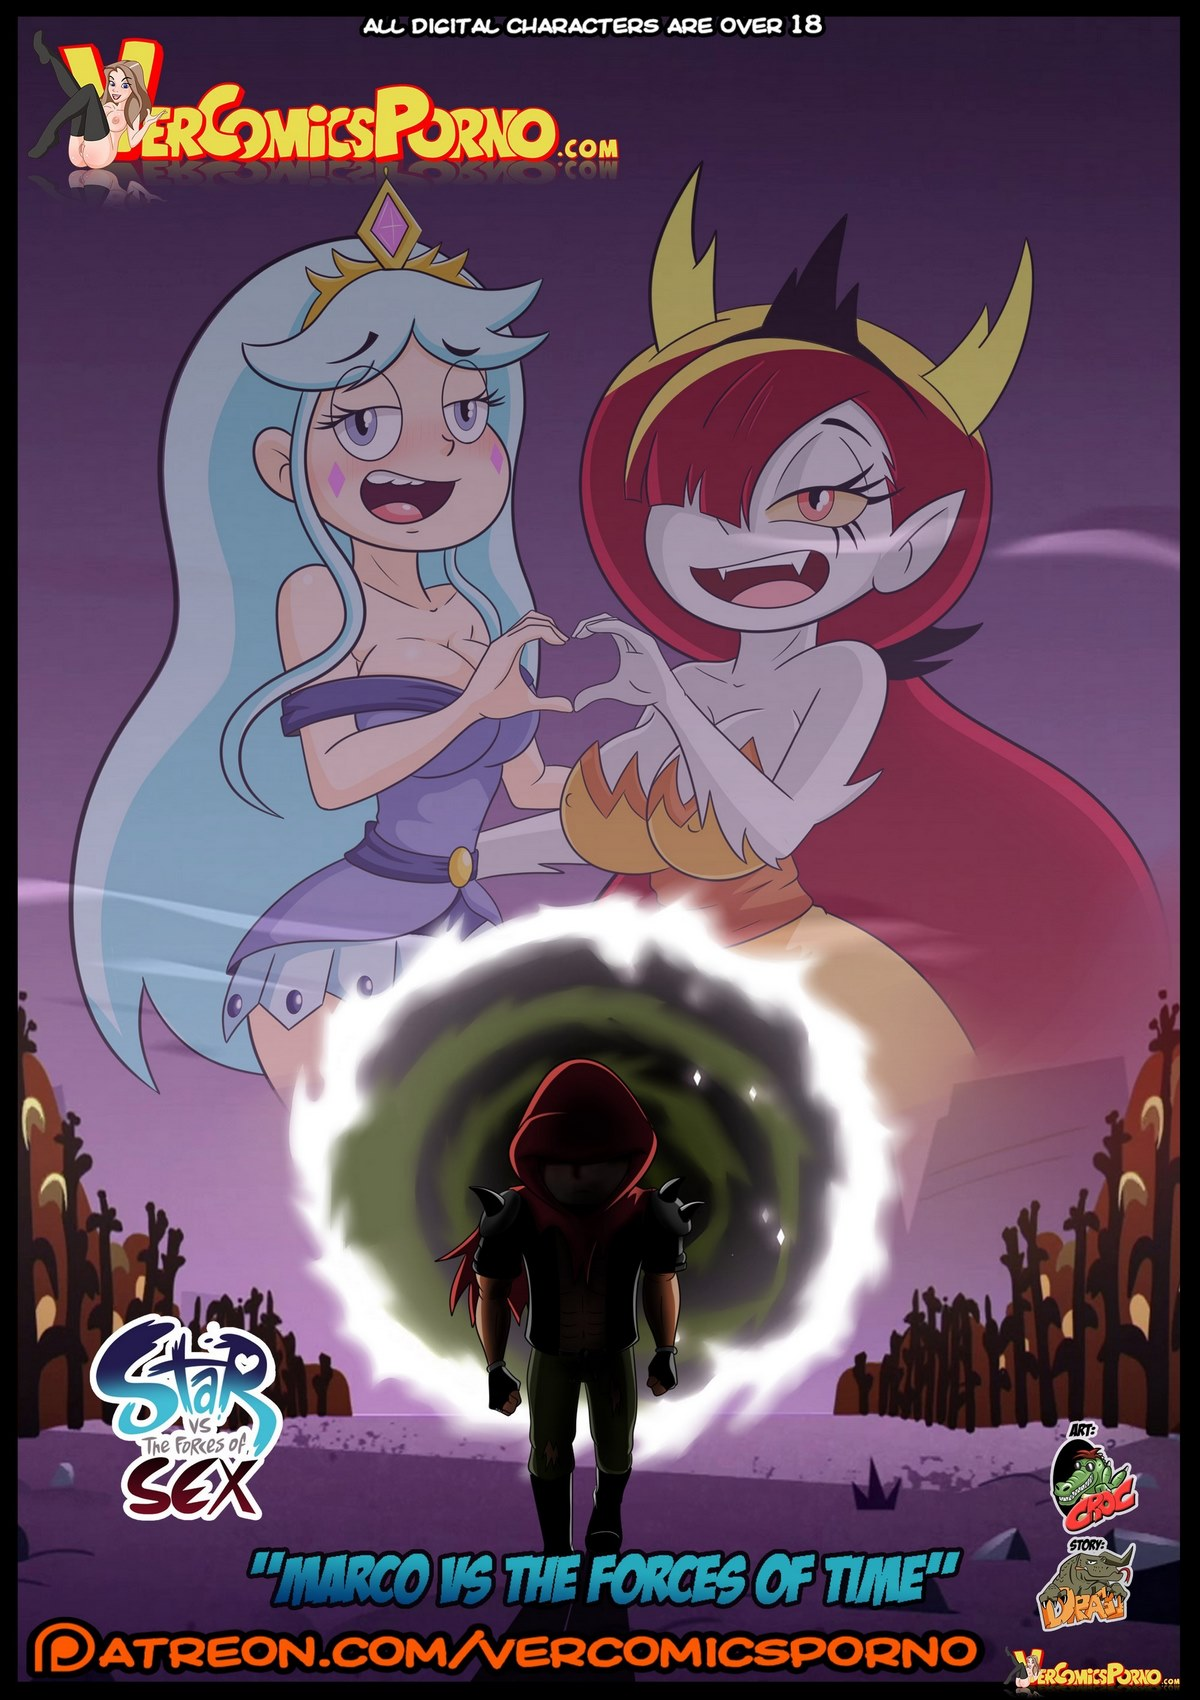 Marco vs the Forces of Time by Croc